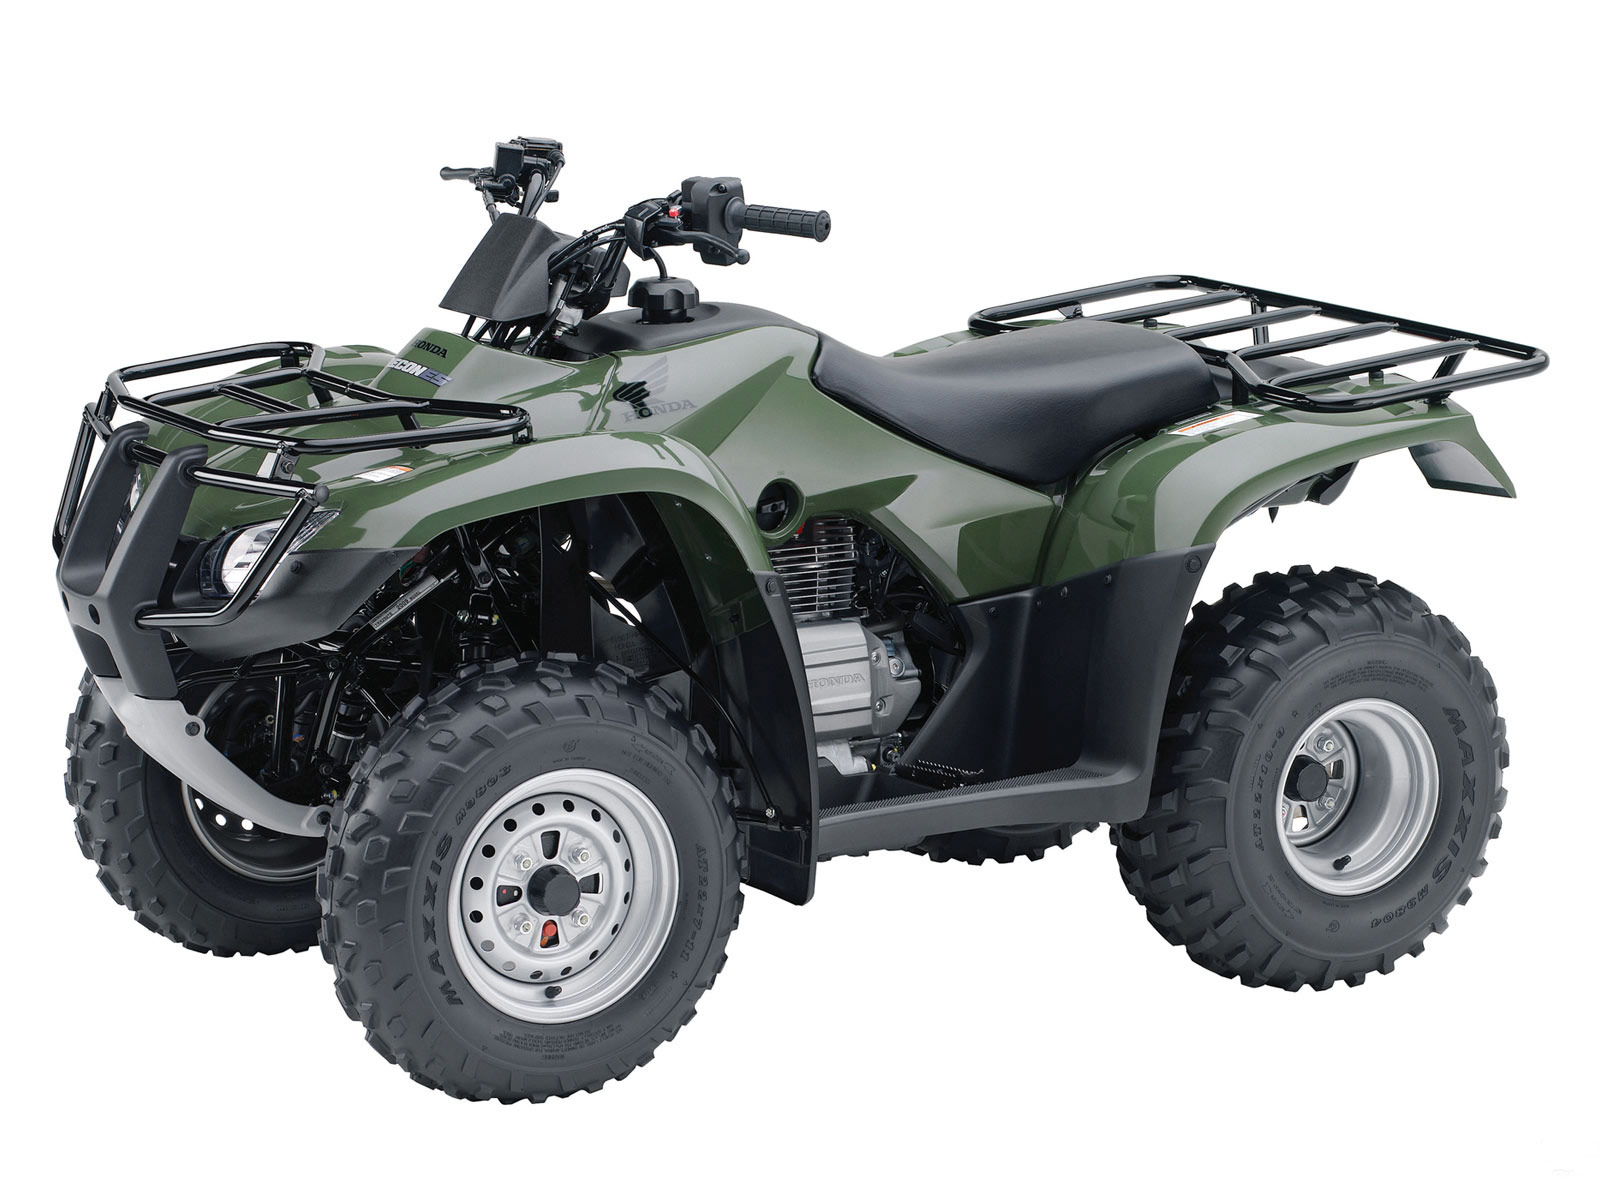 2009 honda fourtrax recon es atv wallpapers. Black Bedroom Furniture Sets. Home Design Ideas